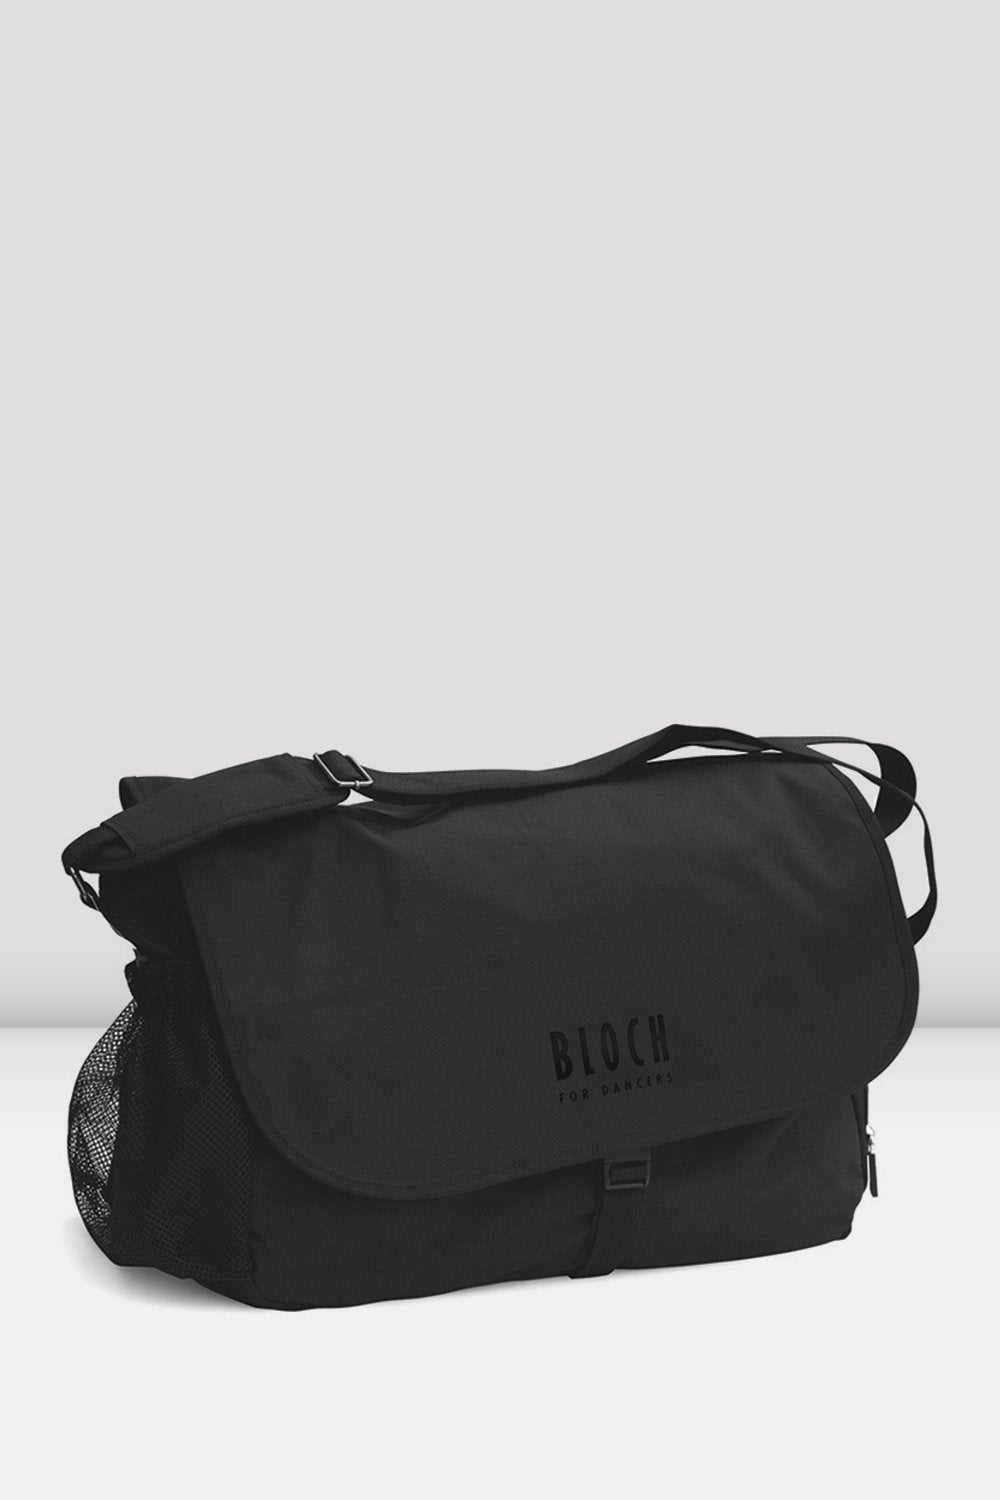 BLOCH Dance Bag - BLOCH US